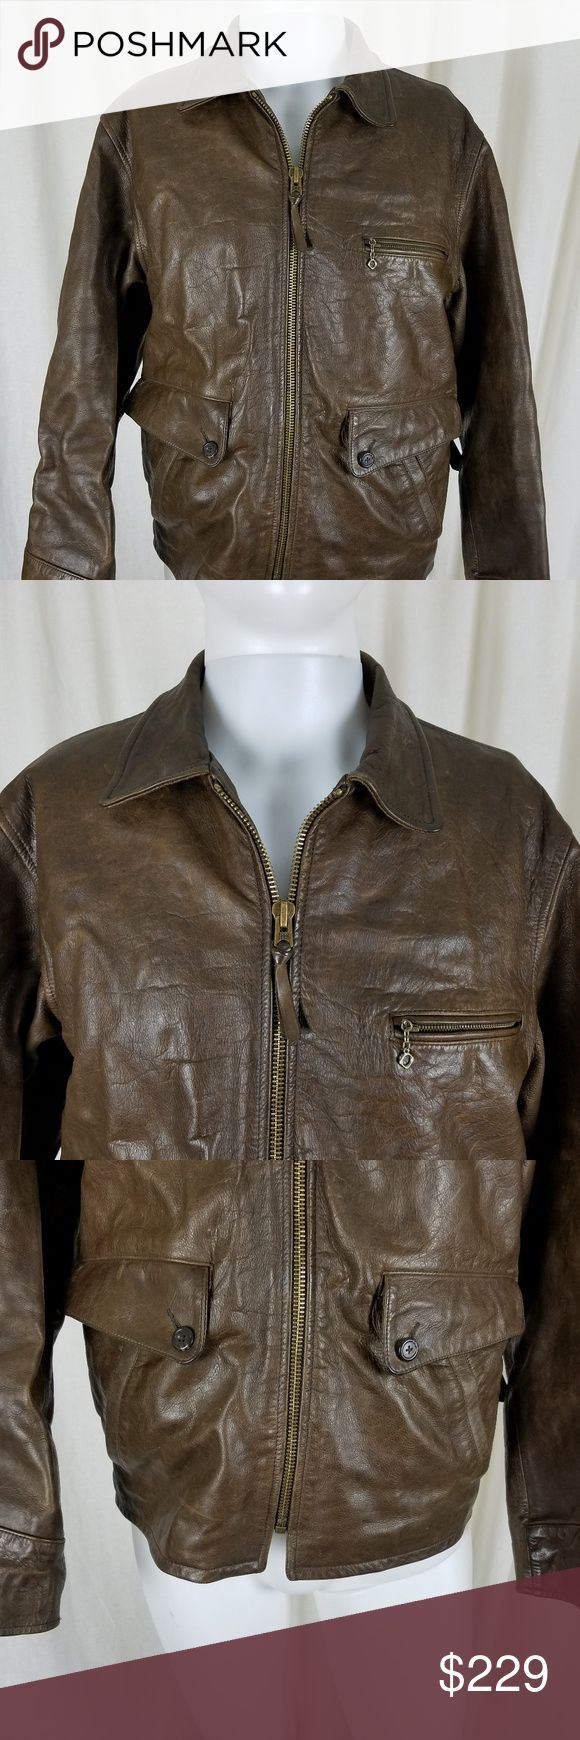 """Polo Sport RL Brown Leather Bomber Jacket Mens S Polo Sport by Ralph Lauren Brown Leather jacket  Men's size small but I believe it is the 90's oversized look.    Good to very good broken in / distressed vintage condition showing only appropriate signs of wear.  Actual measurements:  Armpit to armpit approx 22.5"""" Shoulder seam to shoulder seam approx 19"""" Across the waist area approx 21.5"""" Sleeve length from shoulder seam to cuff approx 24.5"""" Length down the back approx 25.5"""" Polo by Ralph…"""